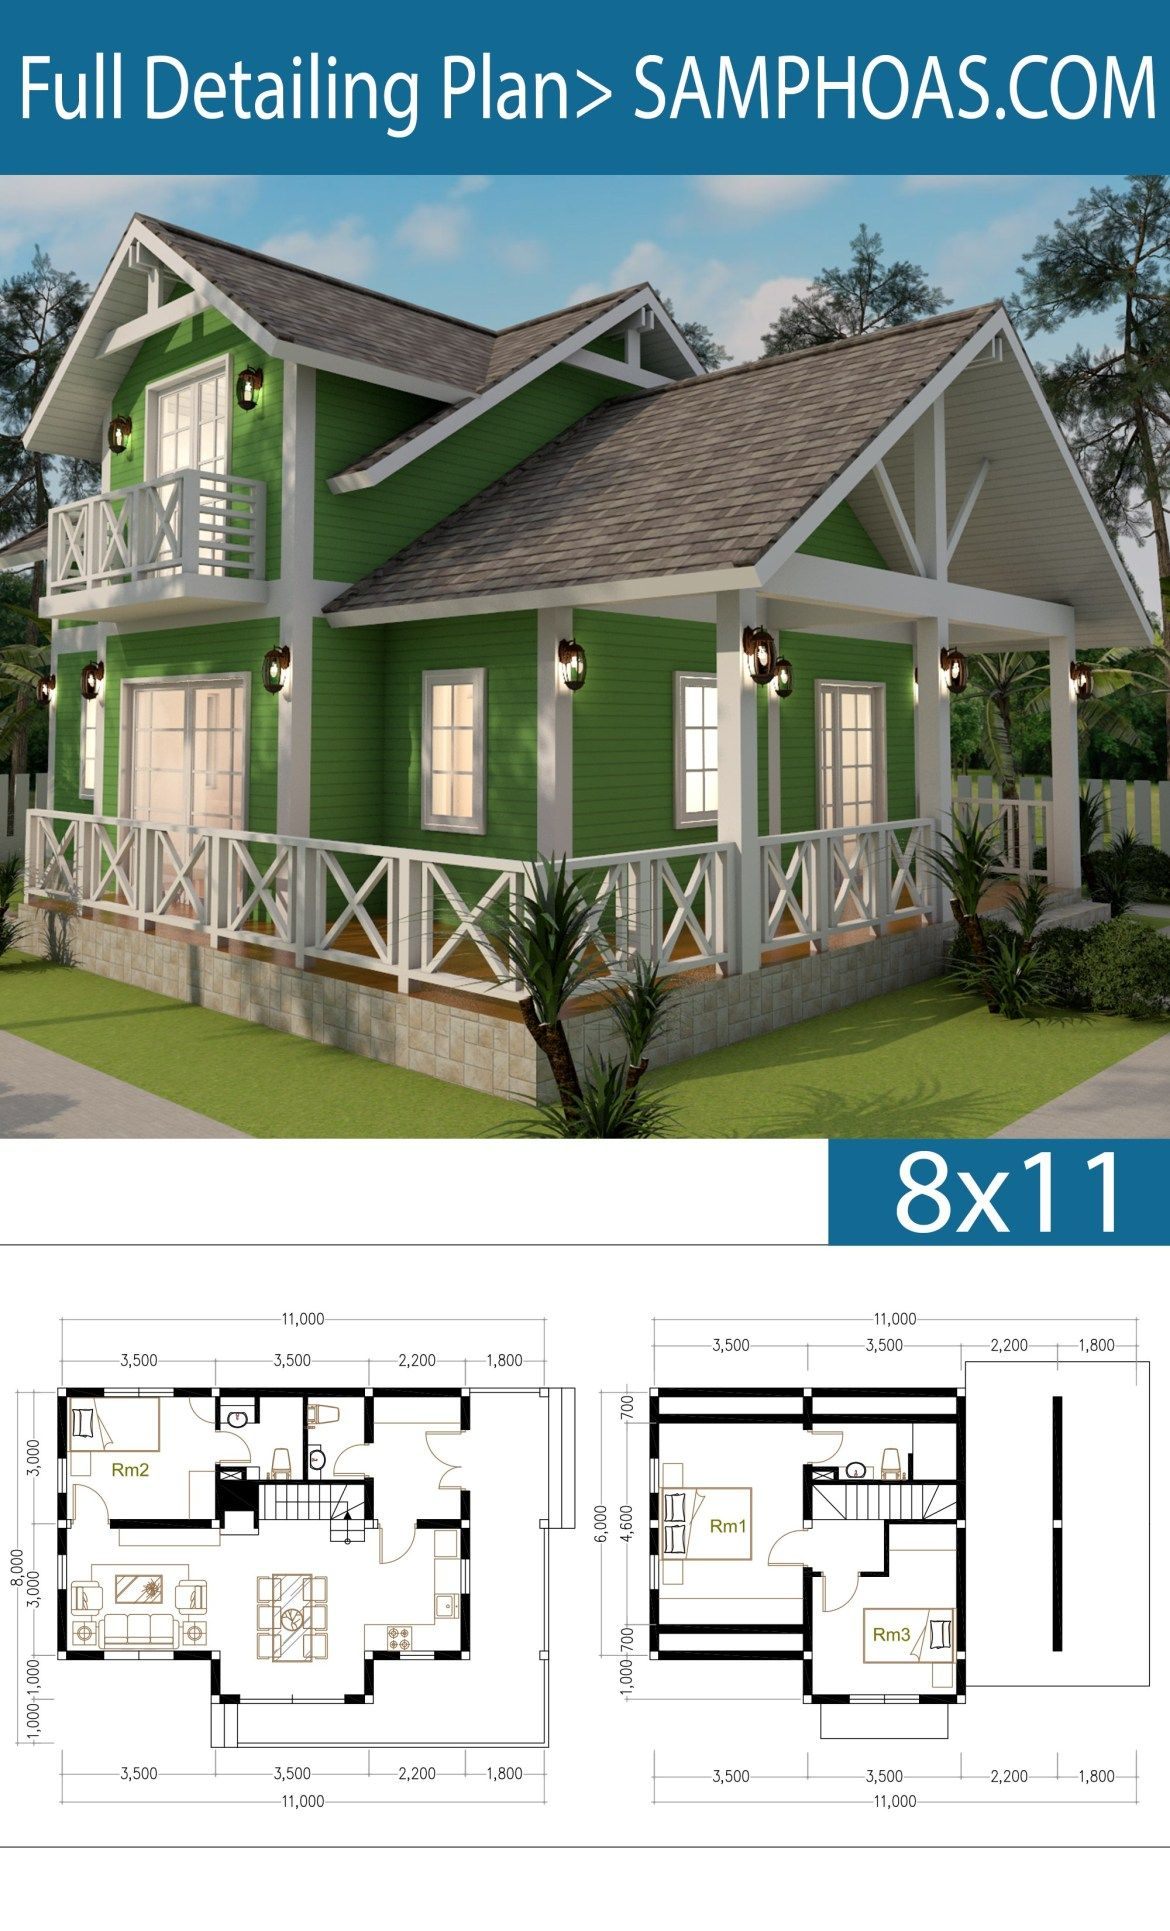 2 Story House Plan 8x11m With 3 Bedrooms Samphoas Plansearch Wooden House Plans Beach House Flooring Beach House Design